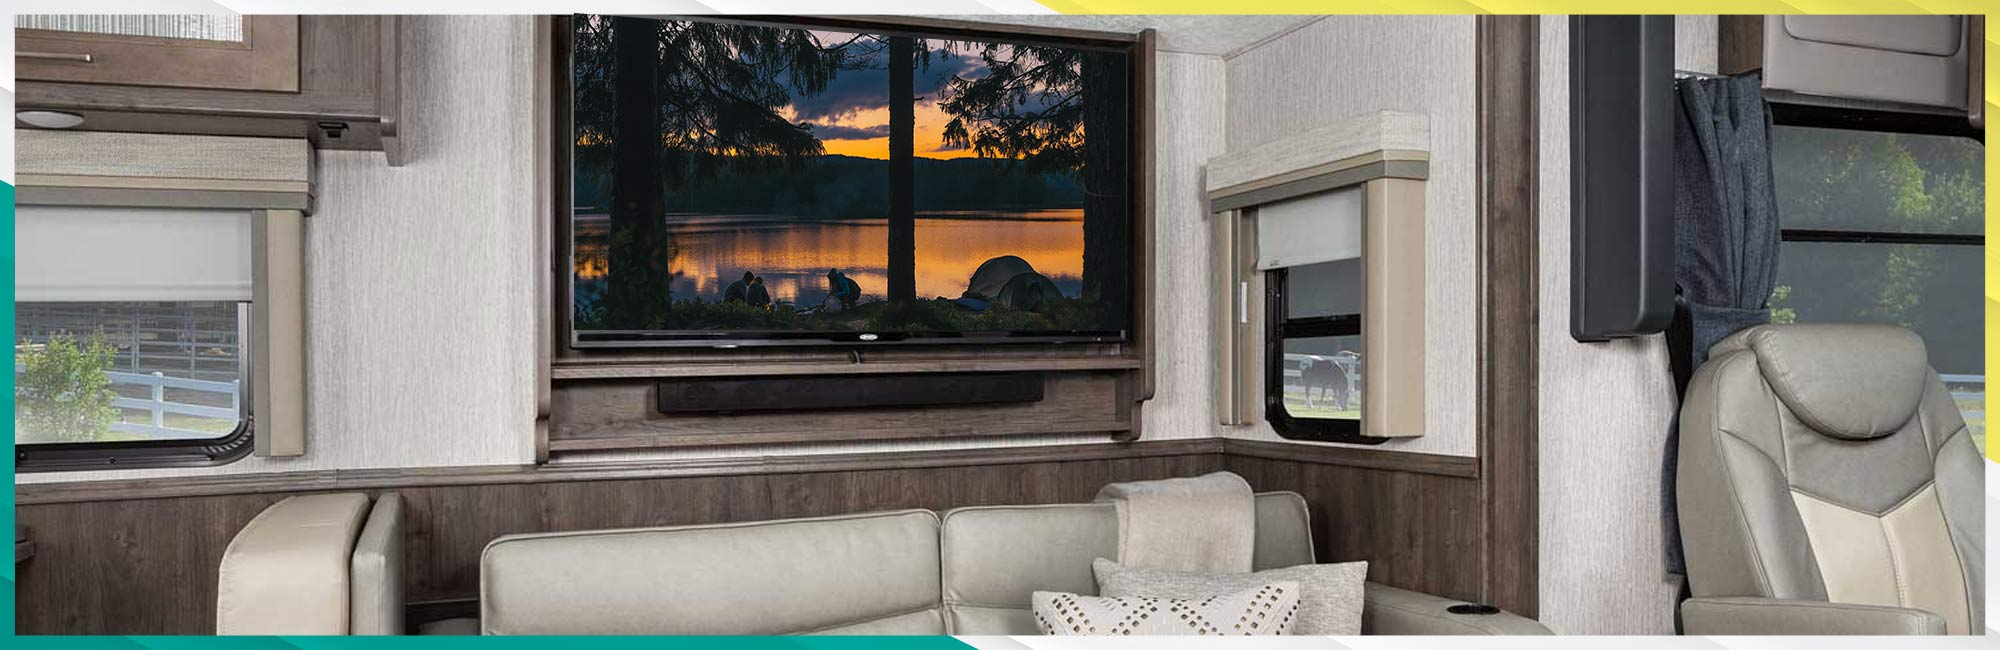 best movies for RV trips